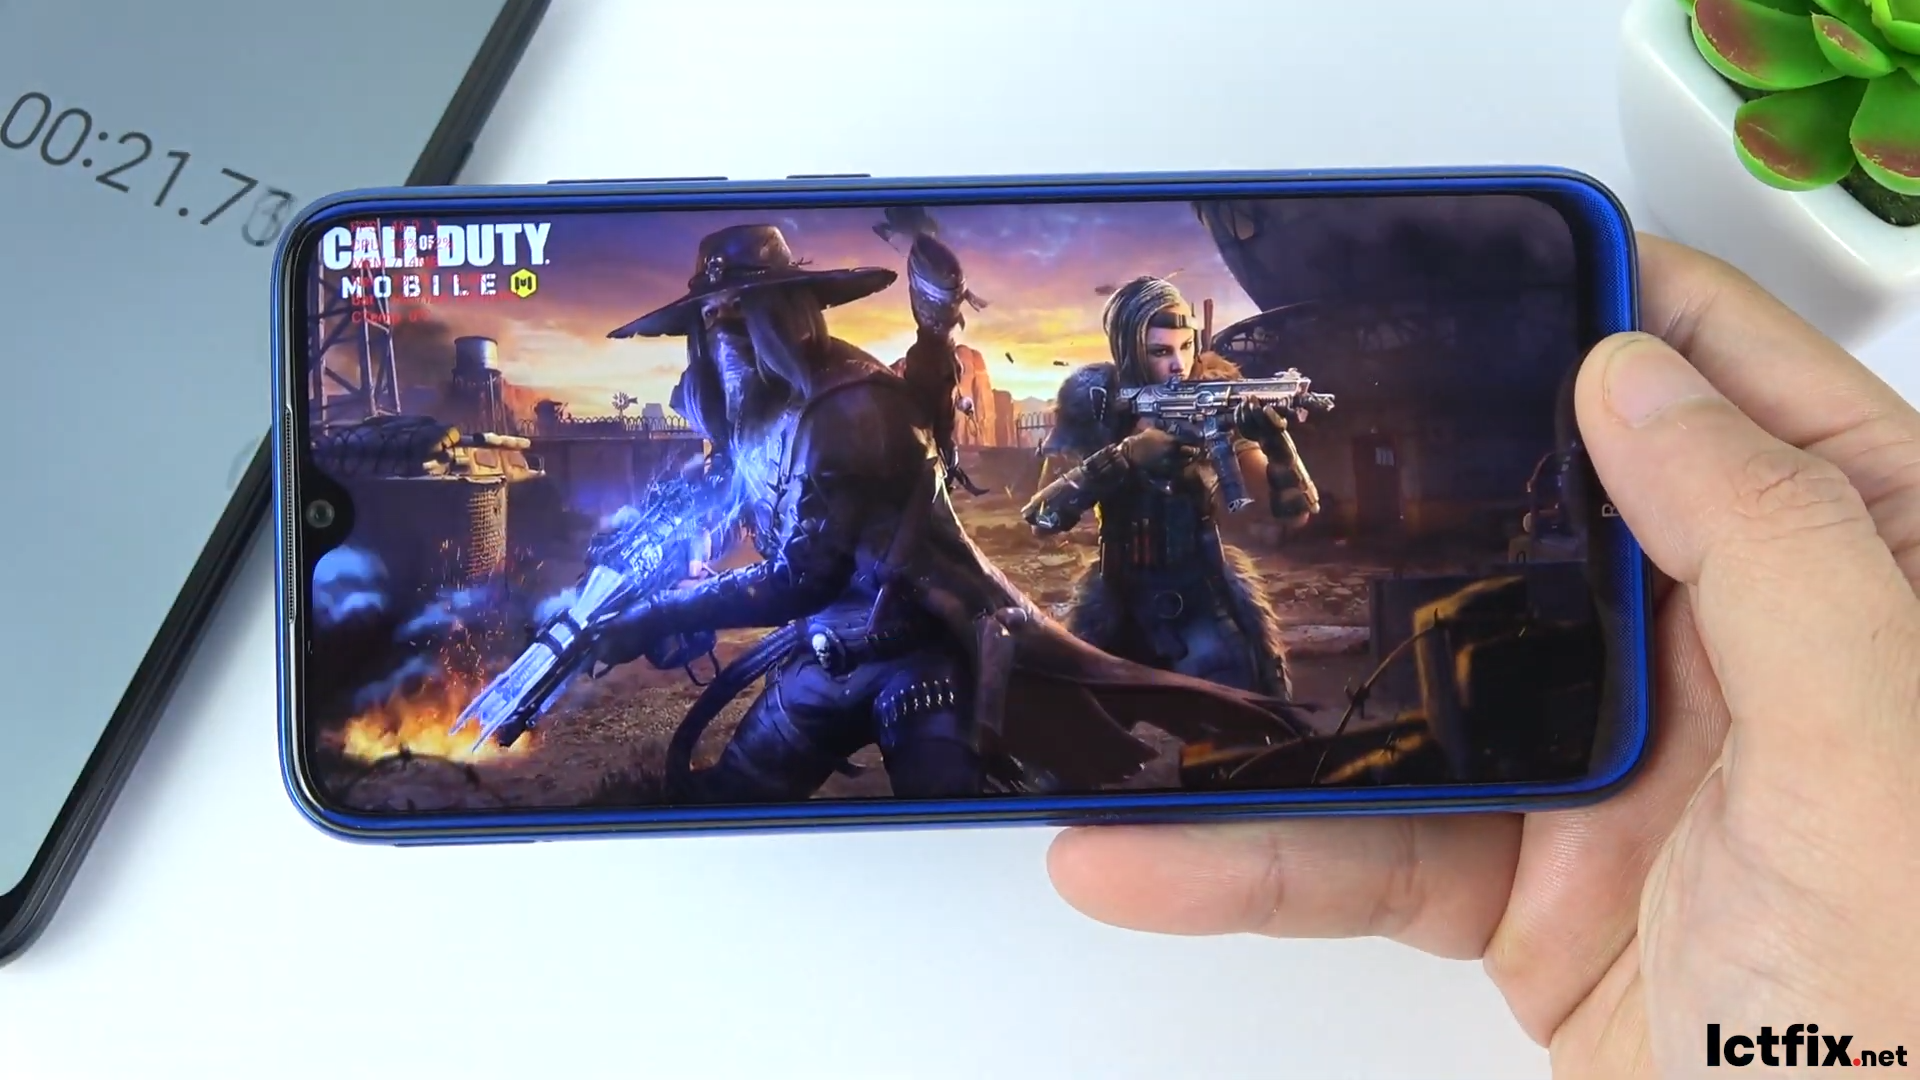 Redmi Note 8 Call of Duty Gaming test